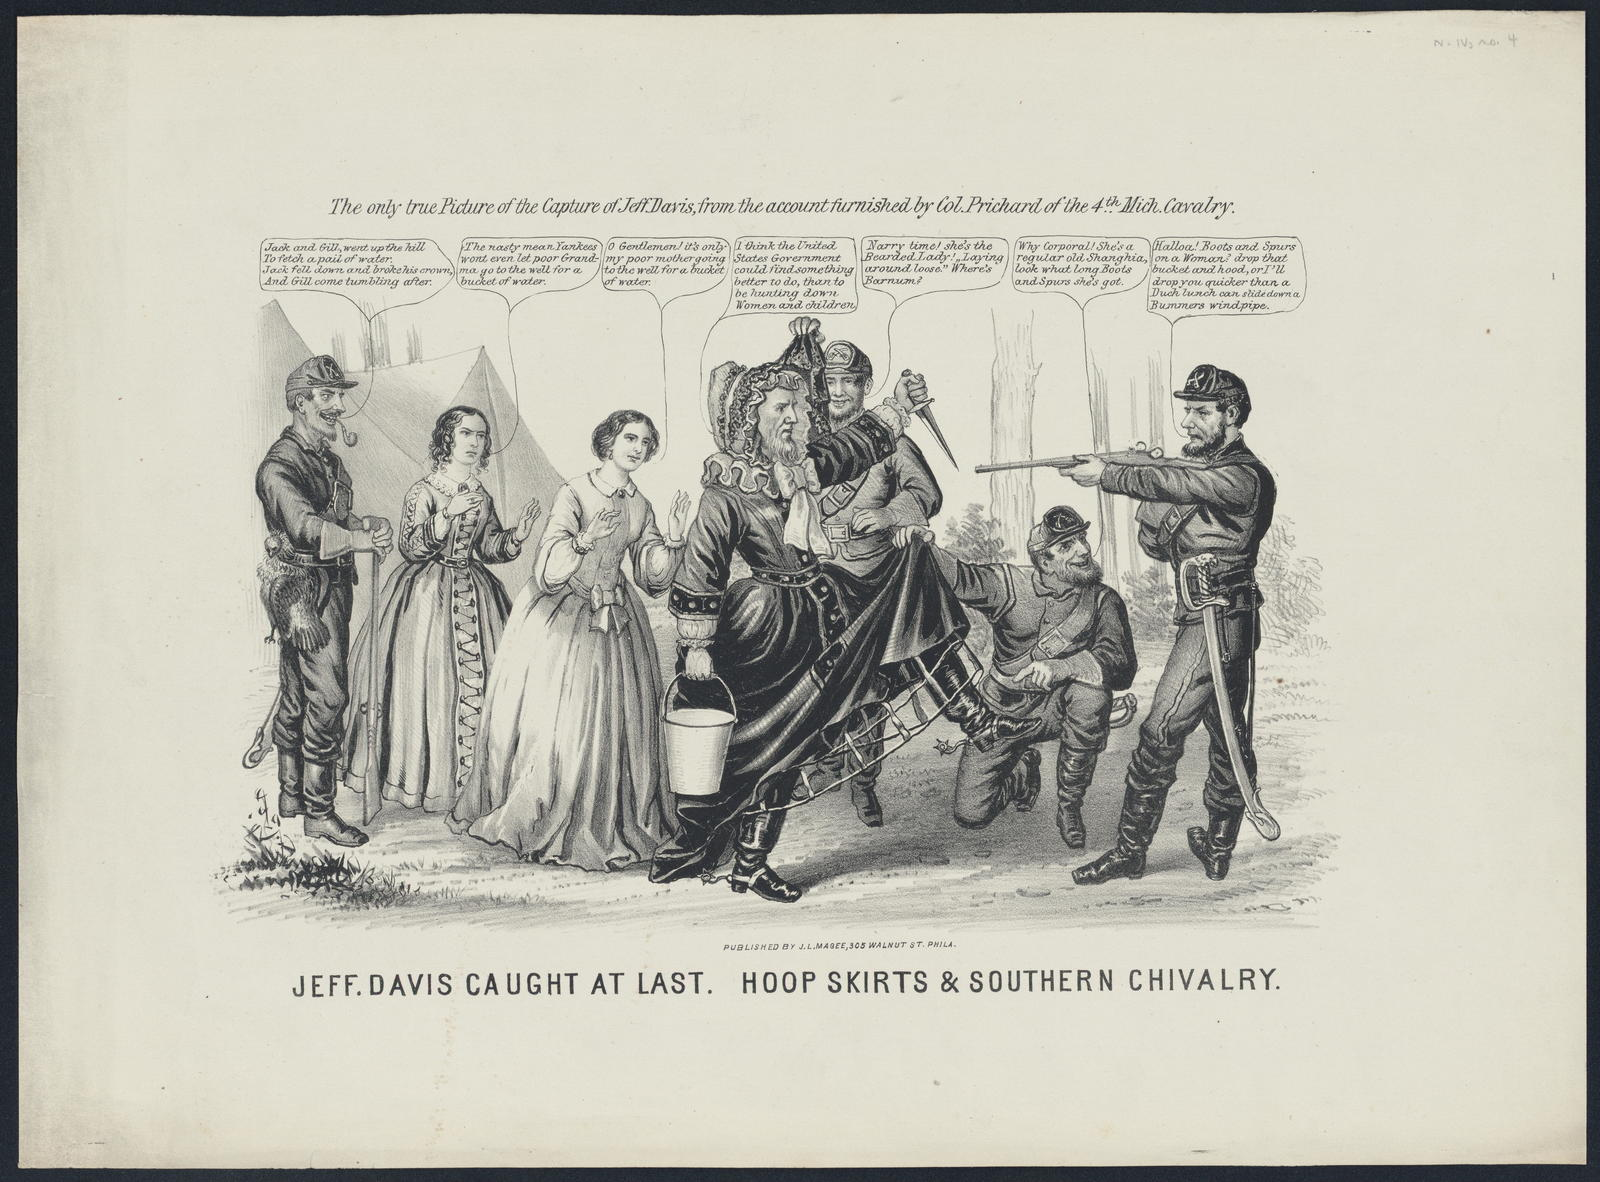 Jeff. Davis caught at last. Hoop skirts & southern chivalry.